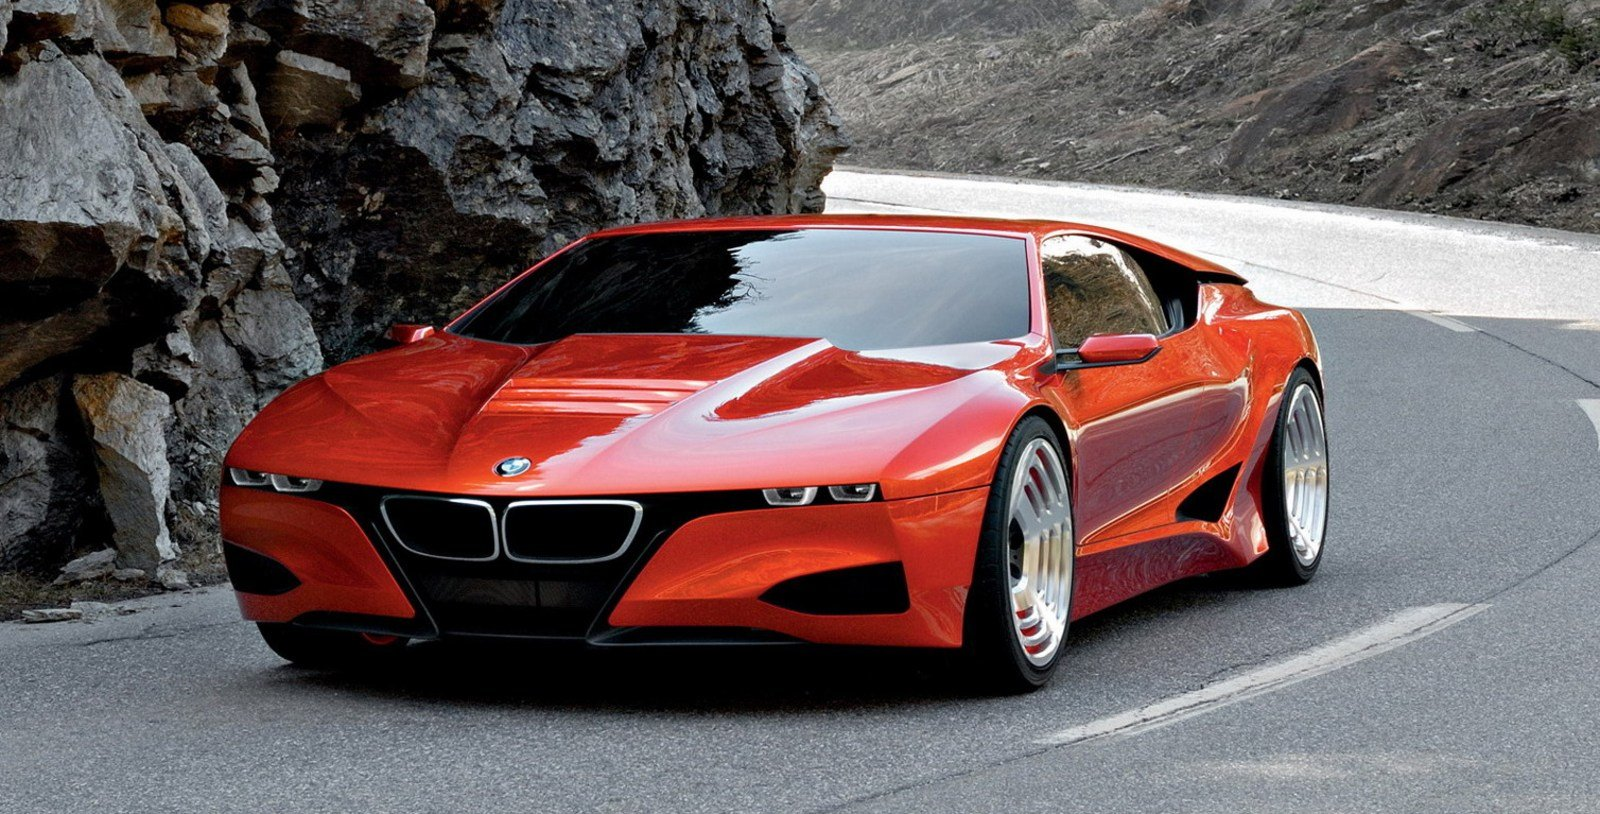 Most Powerful M6 On Its Way While Bmw M Subsidiary